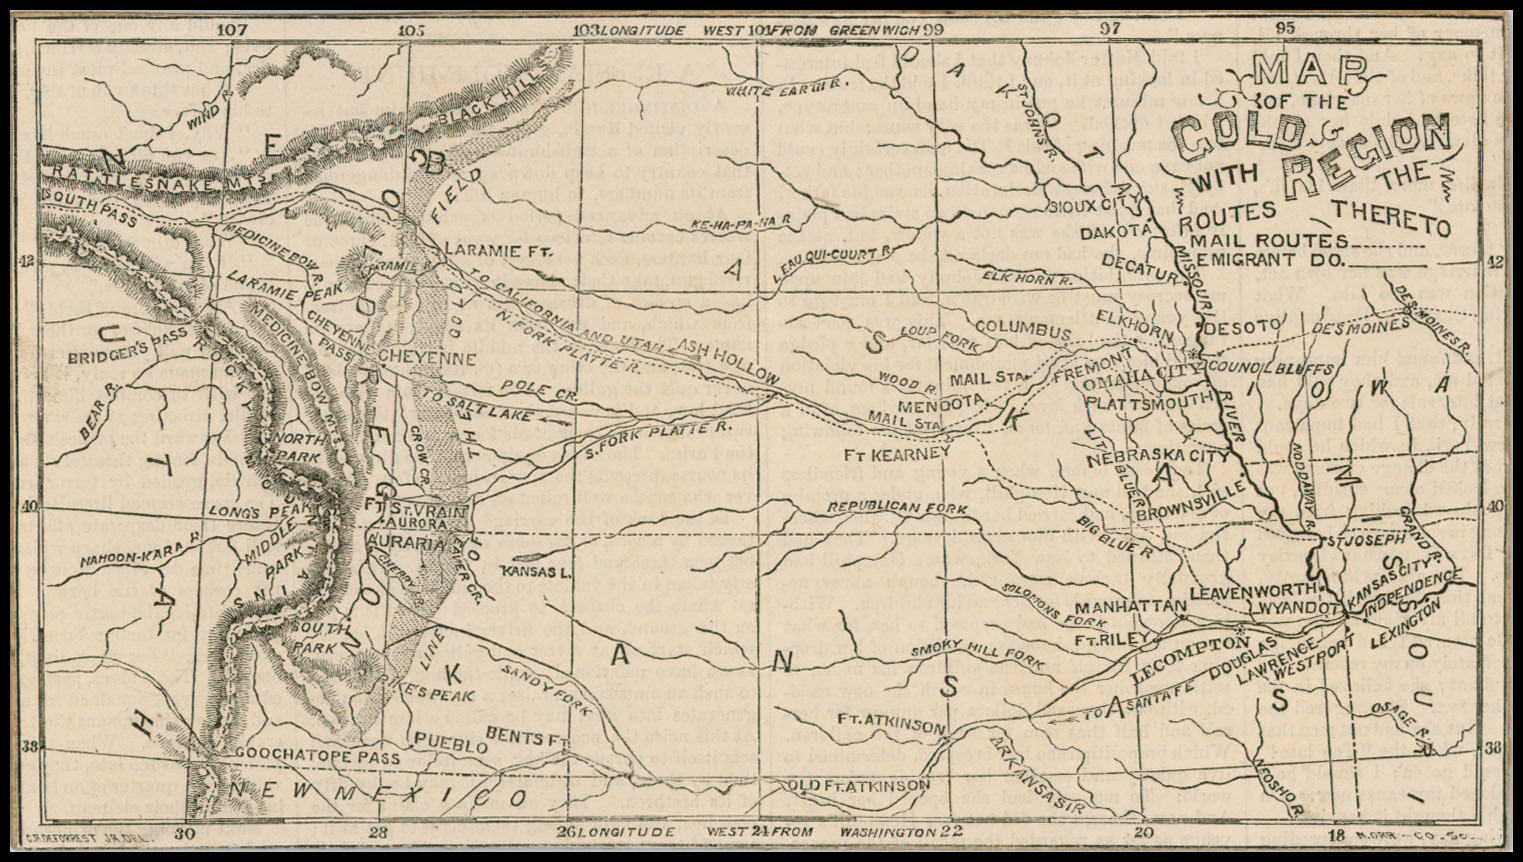 Map Of The Gold Region With The Routes Thereto Colorado